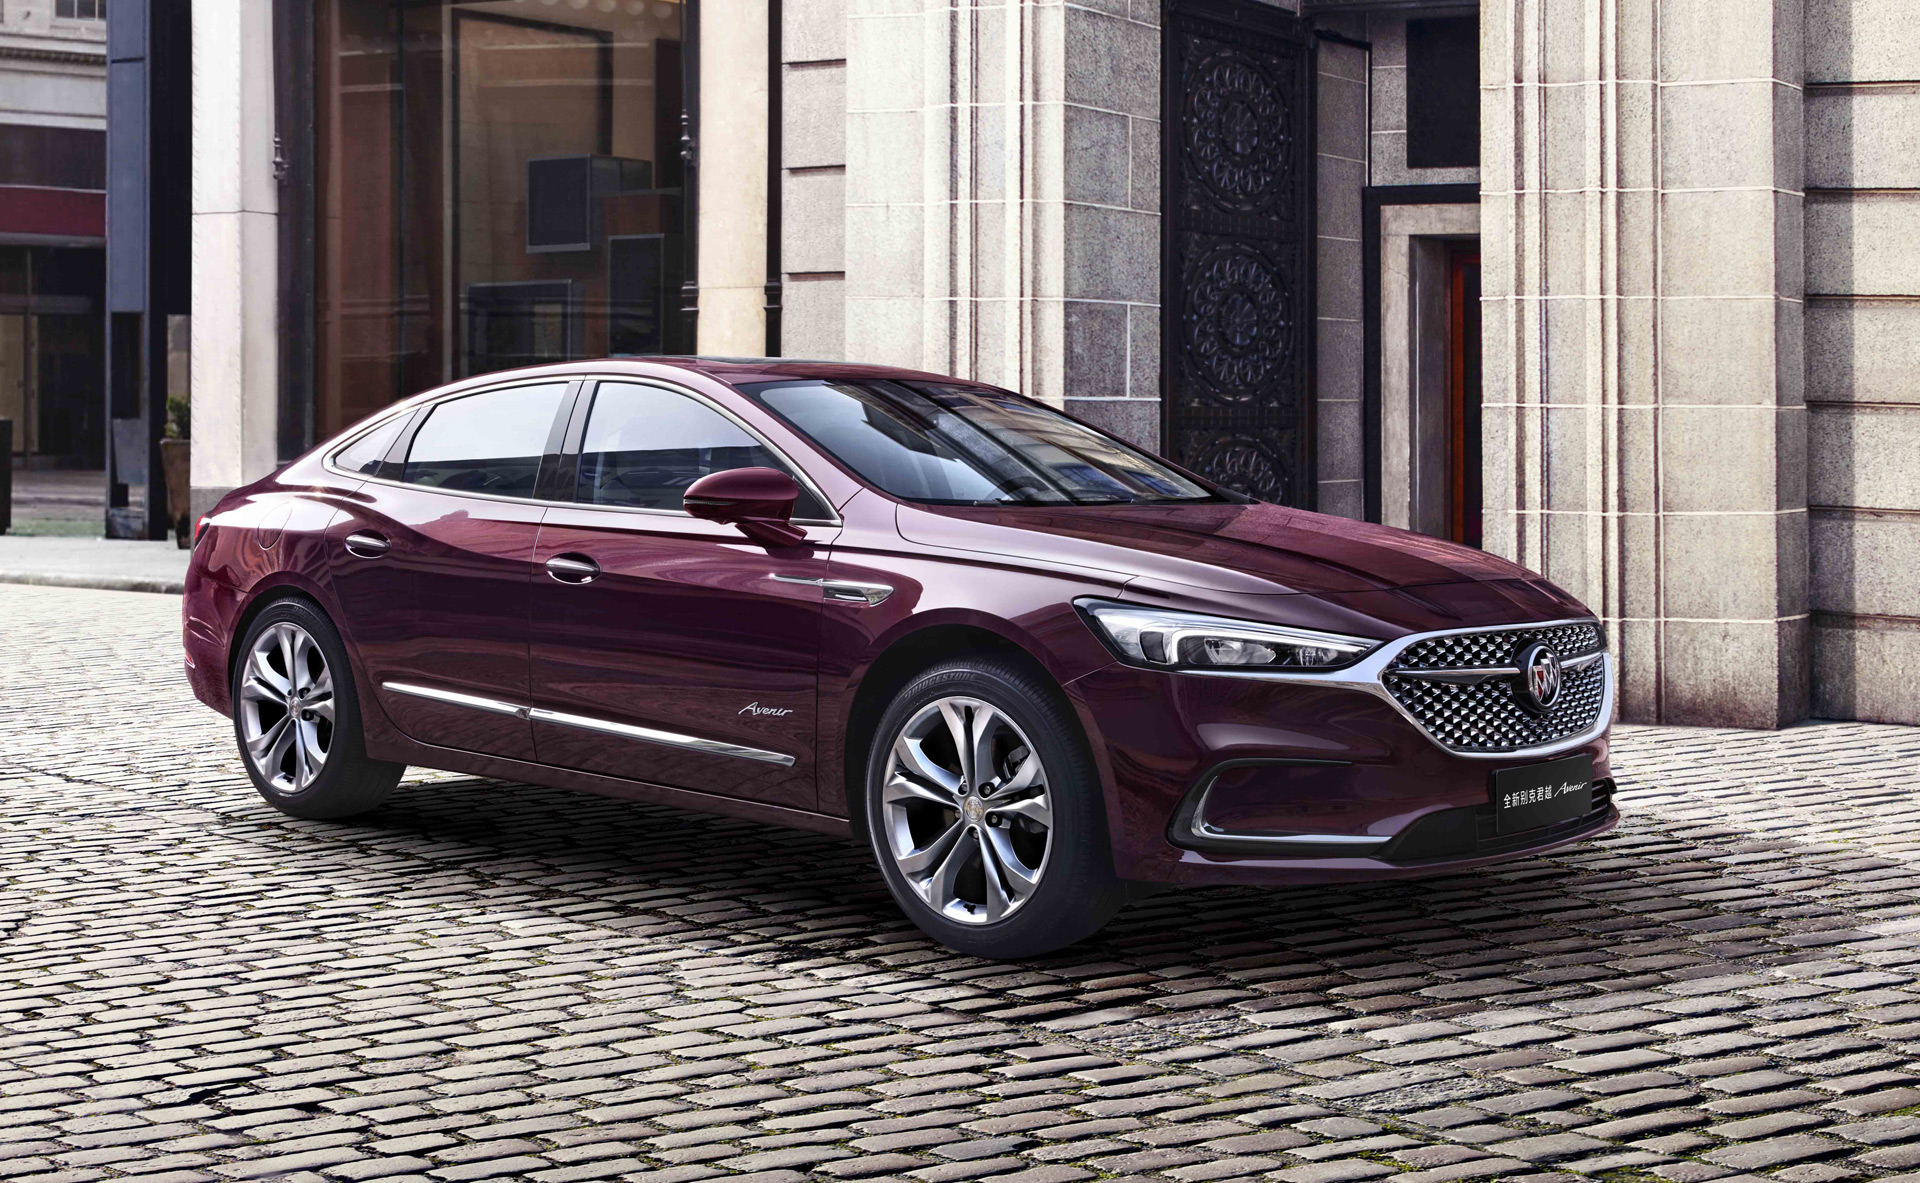 2020 Buick Lacrosse Made Handsome Just As It's Dropped In Us New 2022 Buick Lacrosse Exterior Colors, Interior Colors, Dimensions